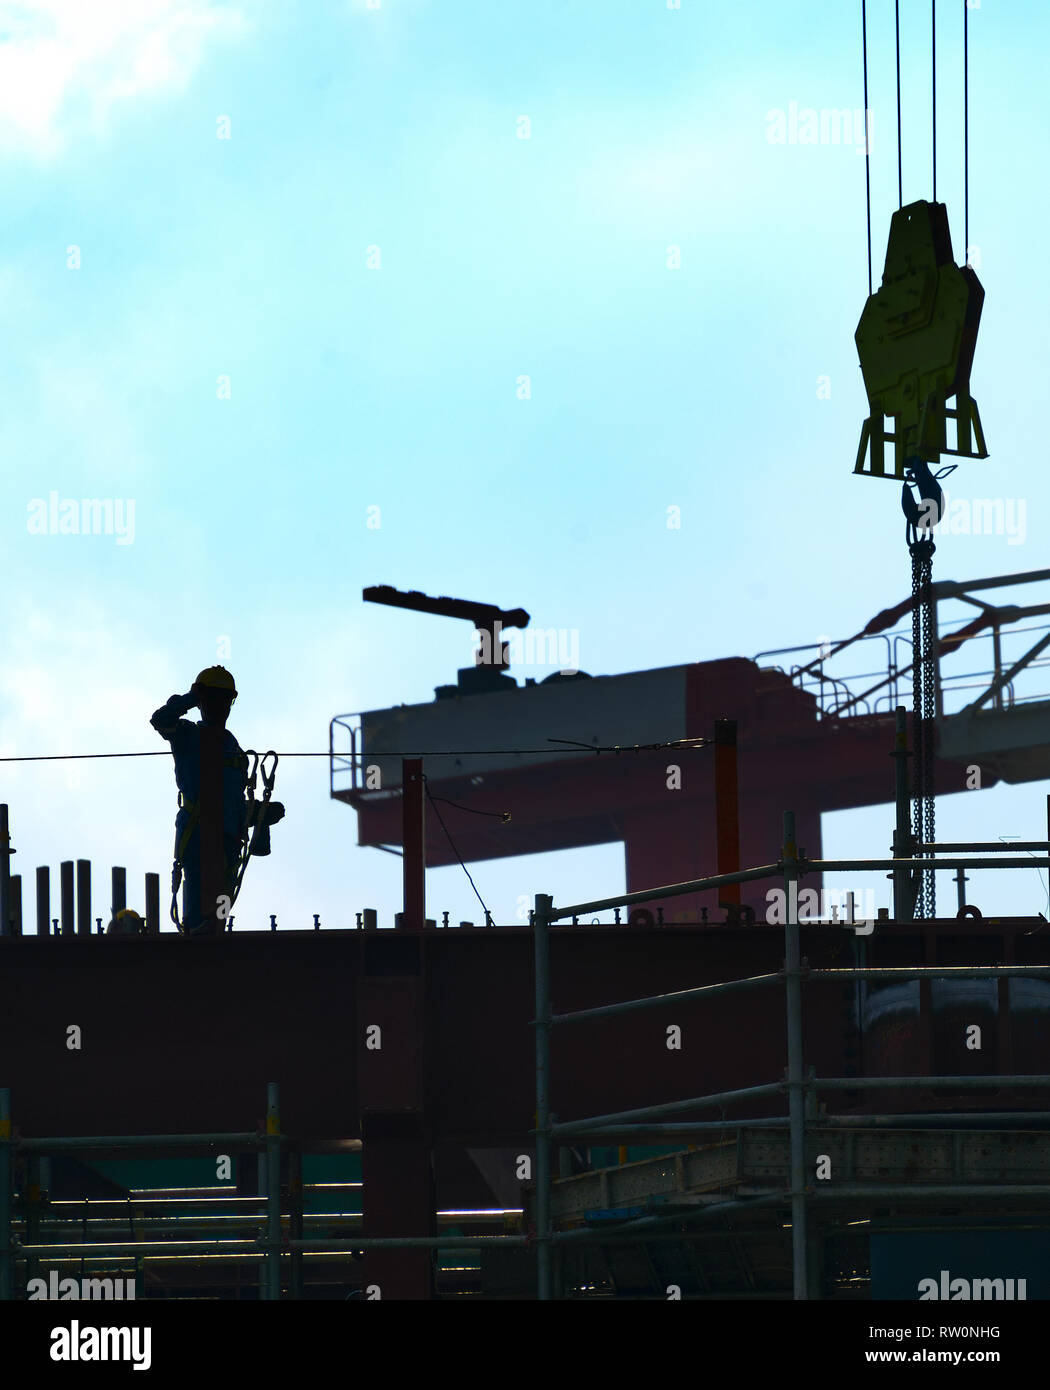 Silhouette of construction worker at construction site. Cranes - Stock Image